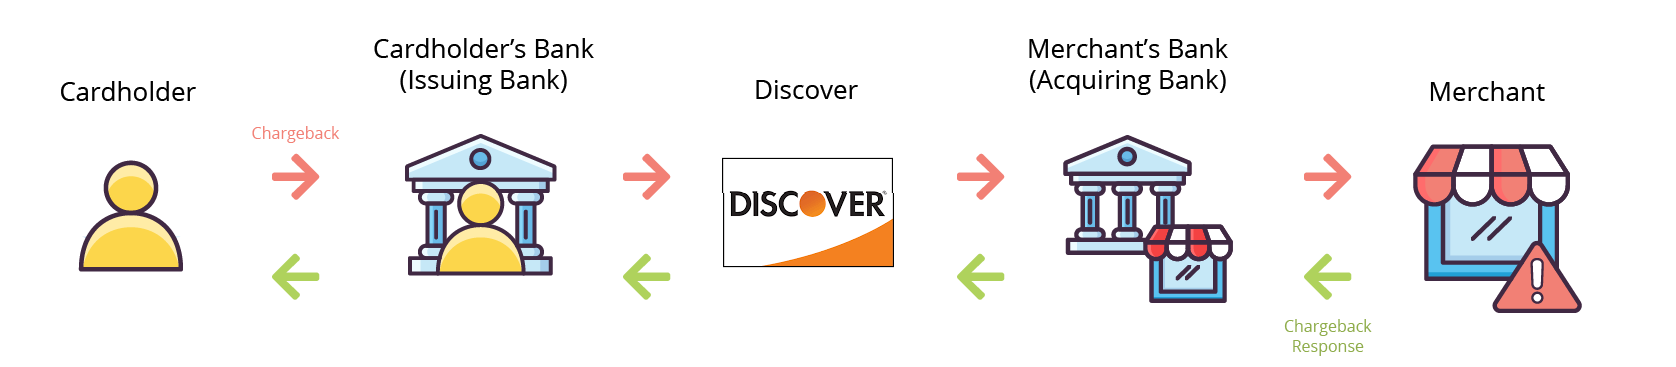 Discover with Issuing Bank